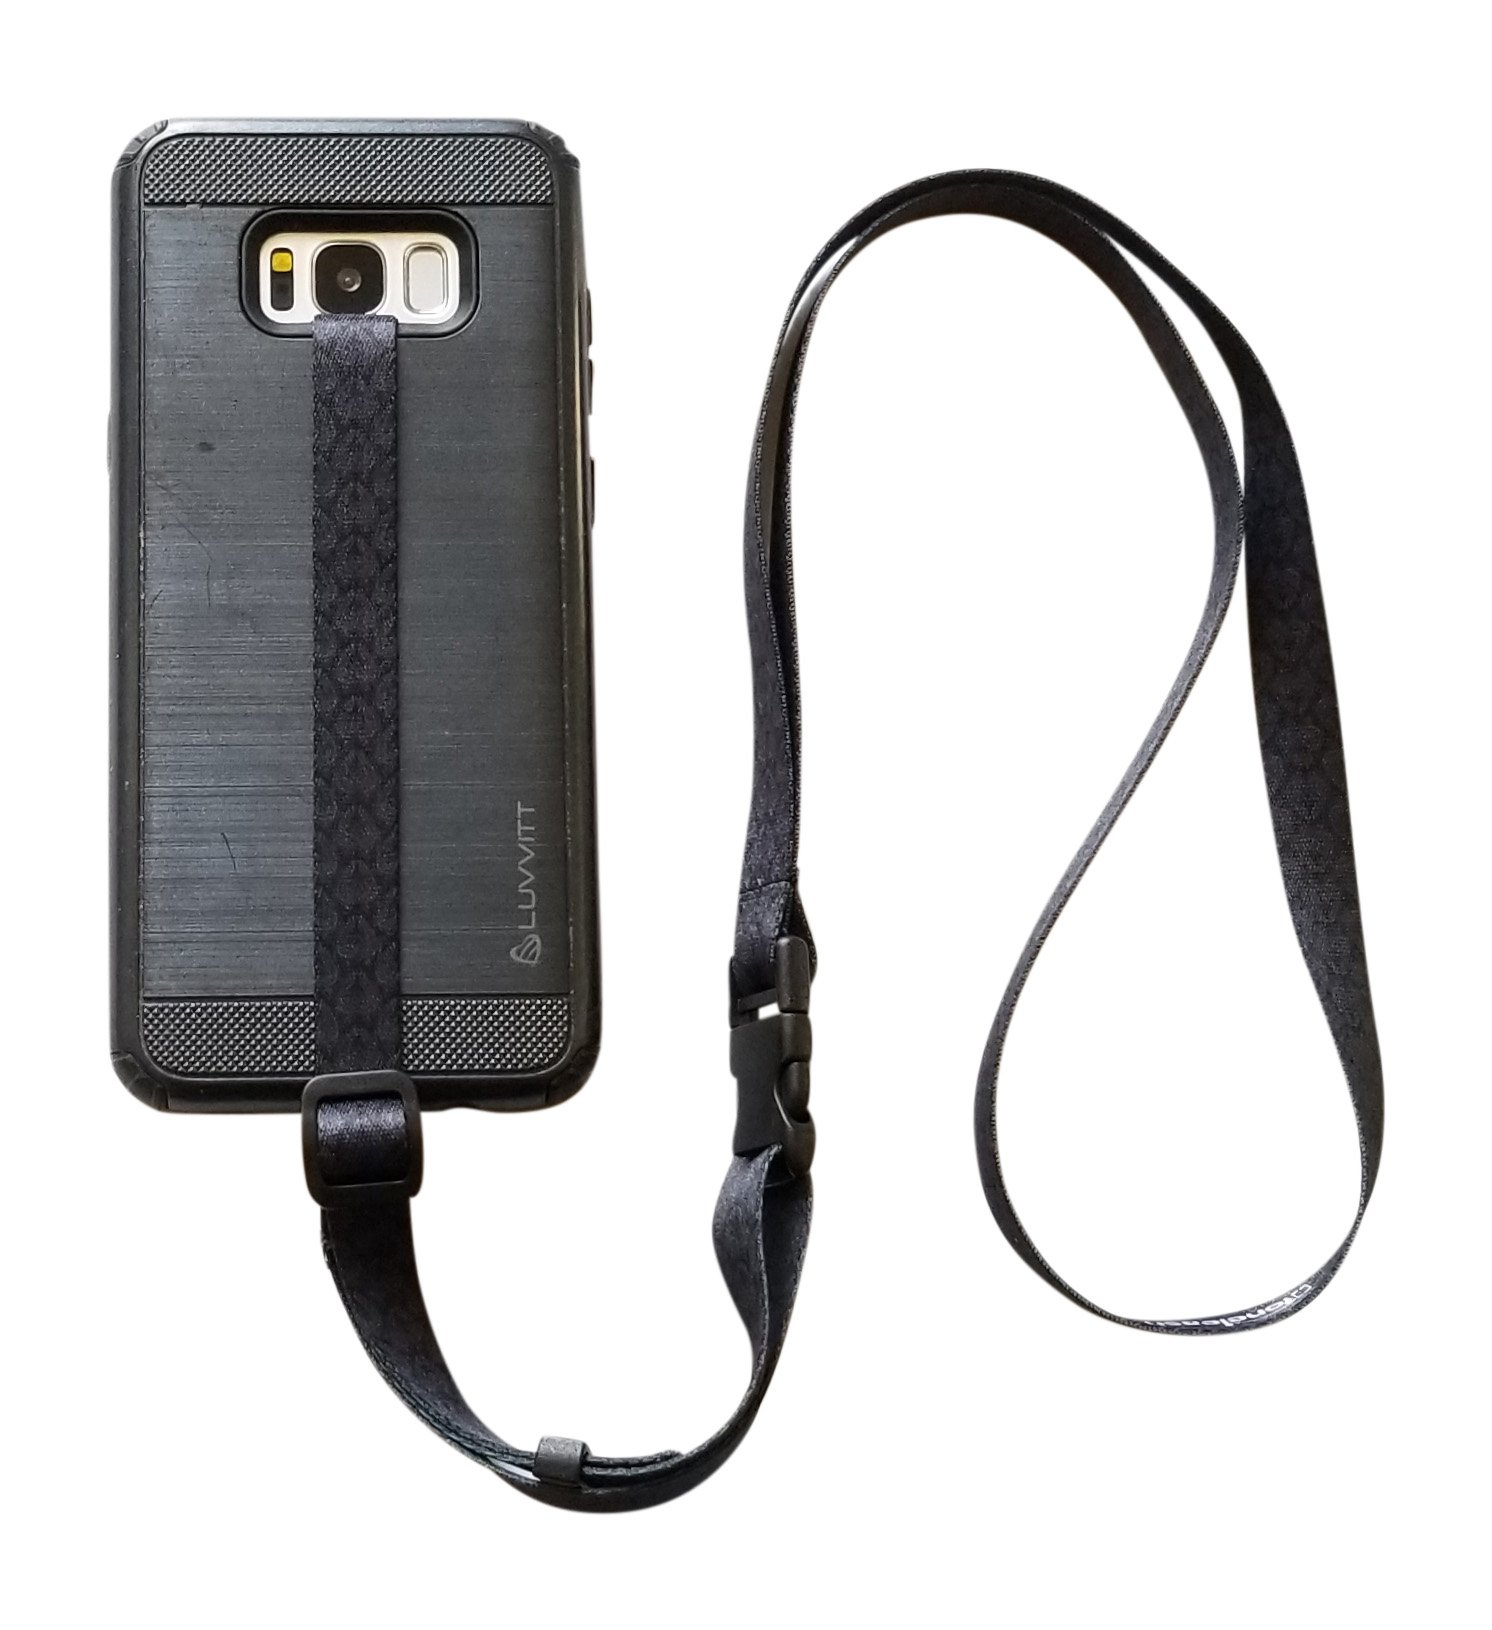 foneleash 3 in 1 Universal Cell Phone Lanyard Neck Wrist and Hand Strap Tether (Spade)